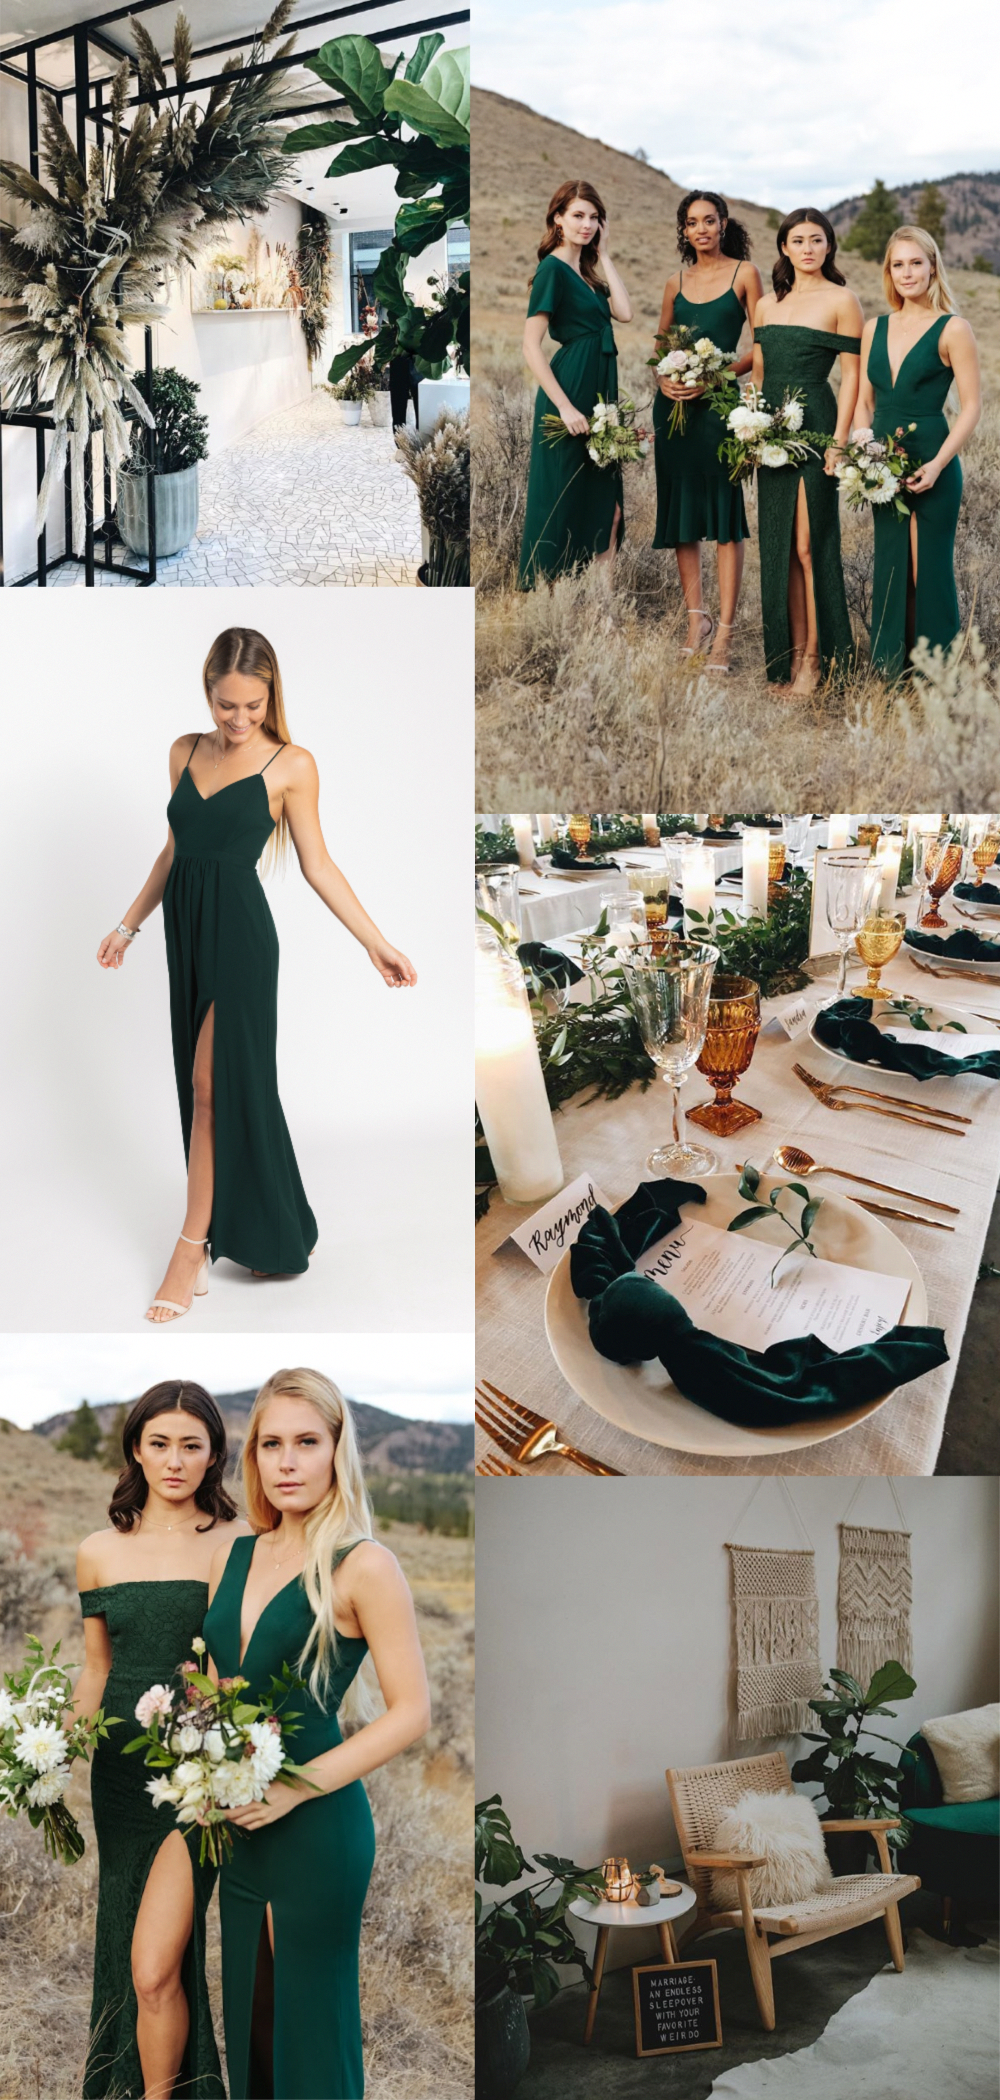 Hunter Green Bridesmaid Dress Wedding Inspiration With Hunter Green As The Accent C Green Bridesmaid Dresses Emerald Green Bridesmaid Dresses Green Bridesmaid